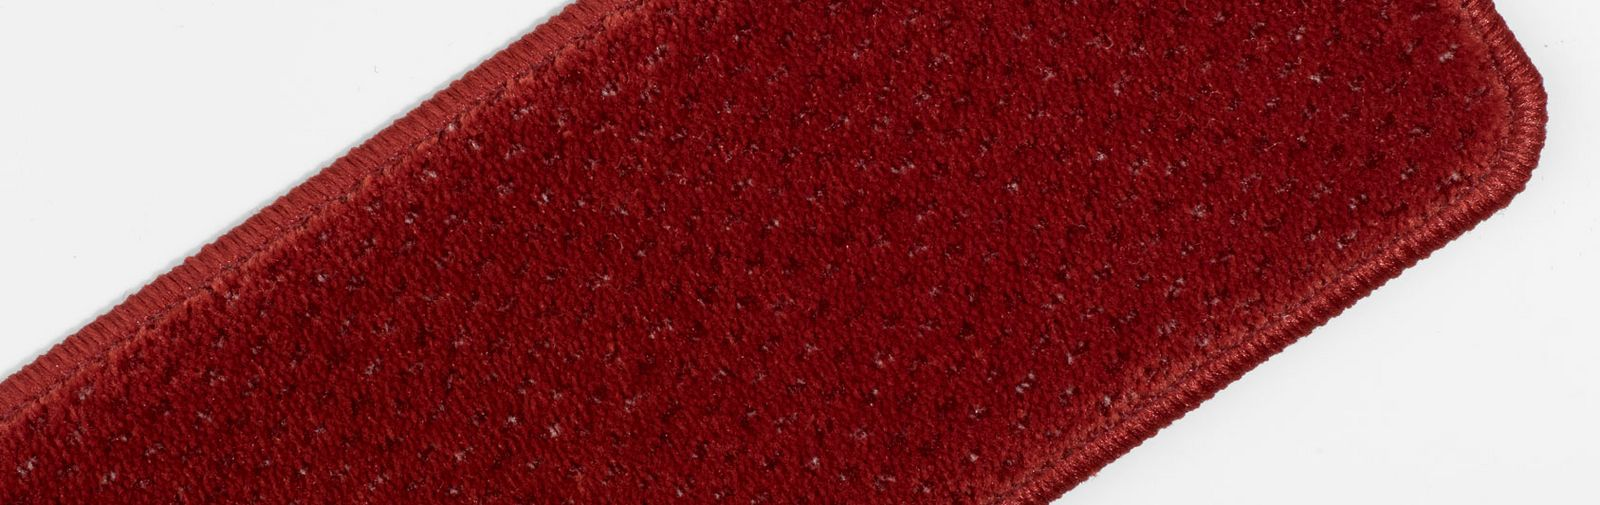 sample hassock crushed velvet color code 2401 color red